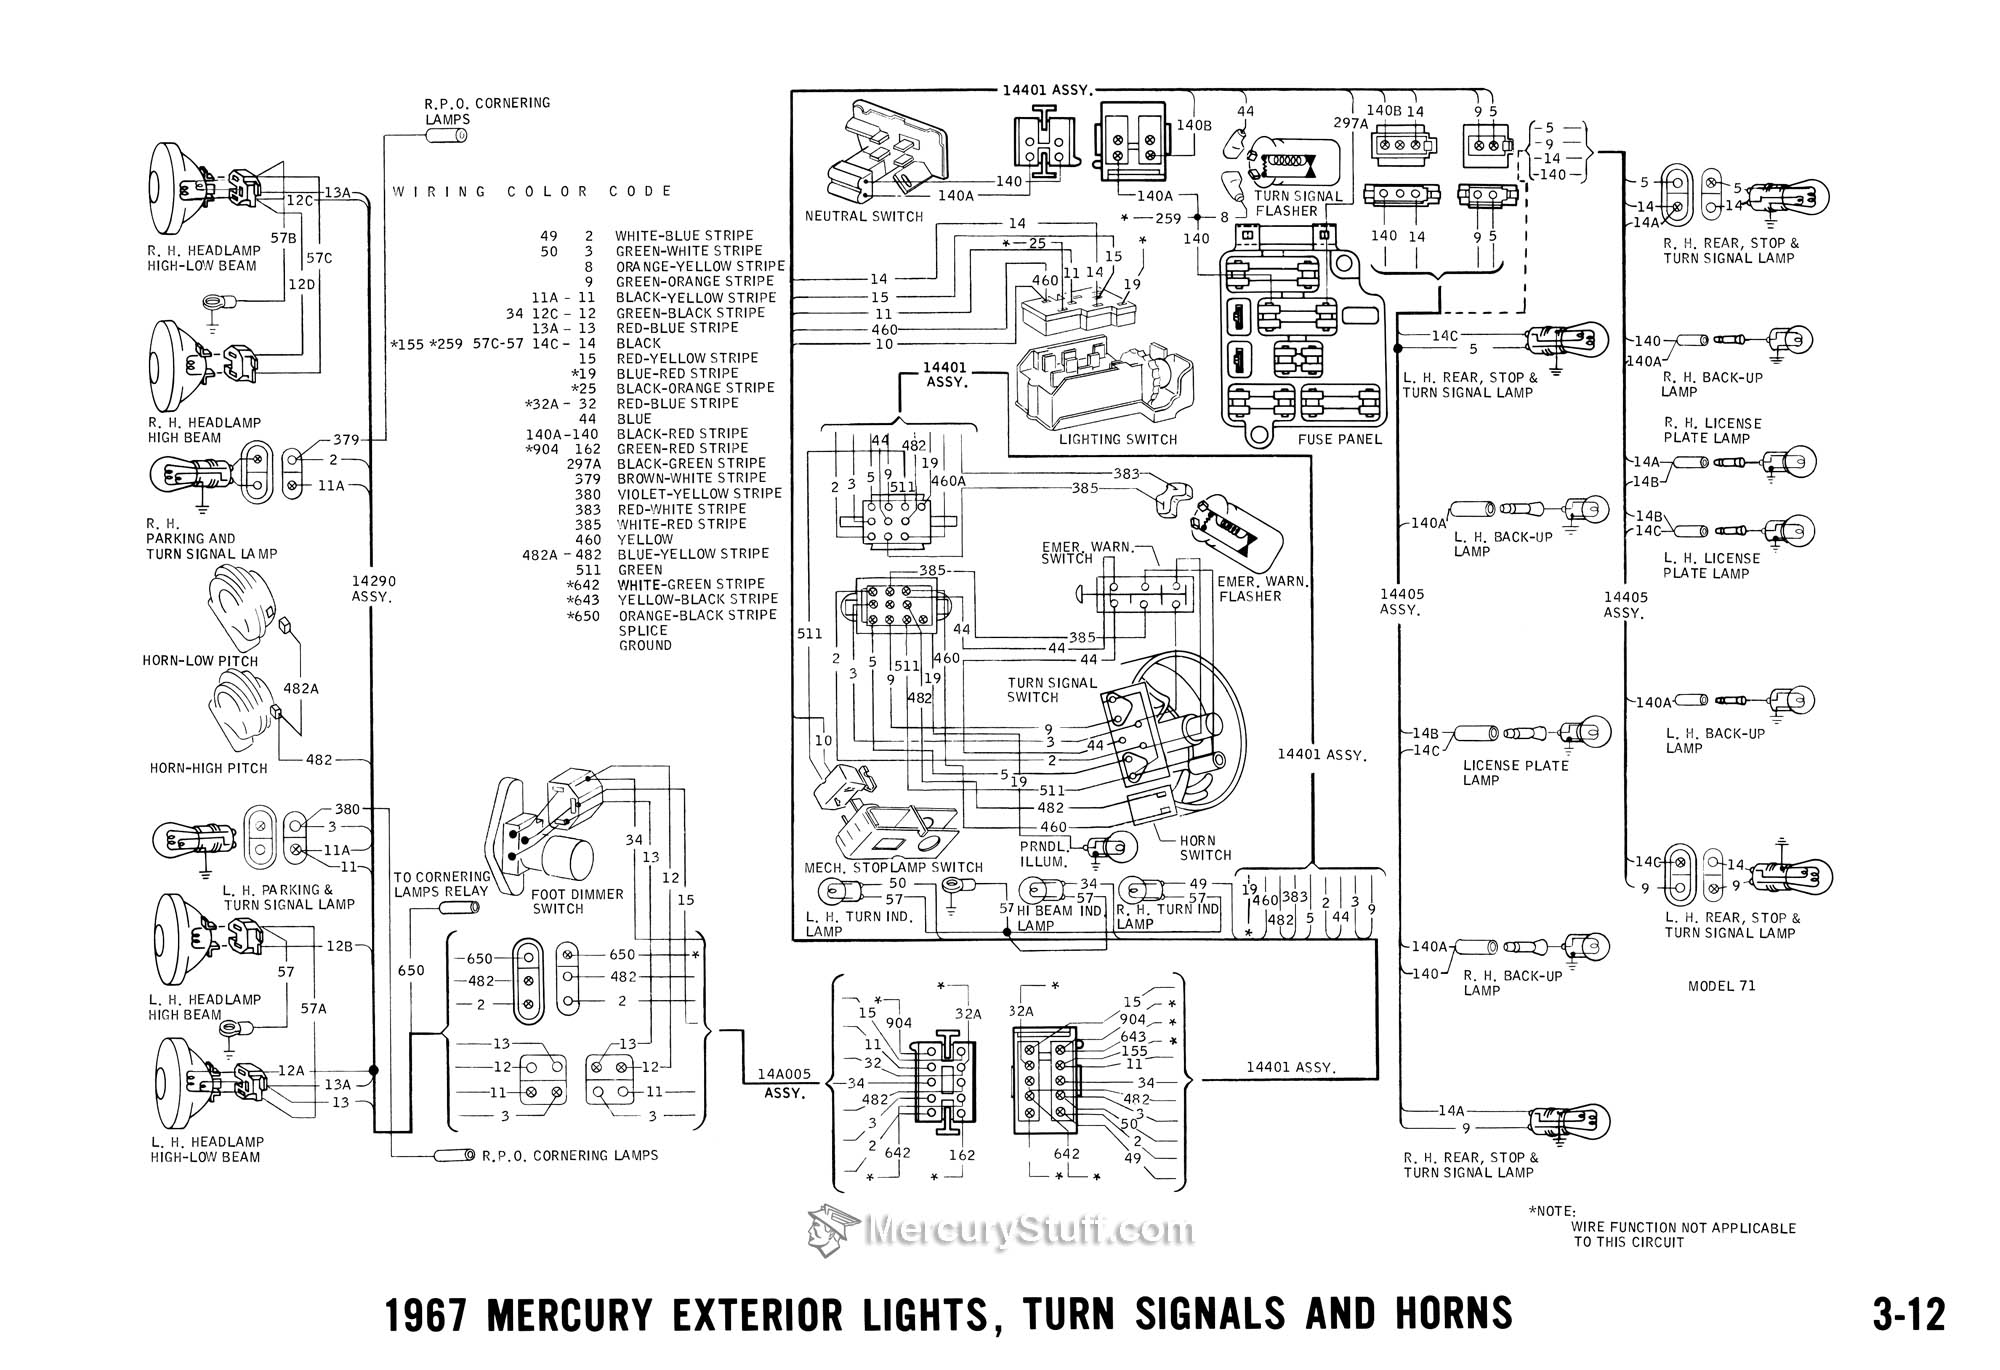 1967 mercury exterior lights turn signals horns wiring diagram 2006 mercury grand marquis the wiring diagram mercury 14 pin wiring harness diagram at soozxer.org